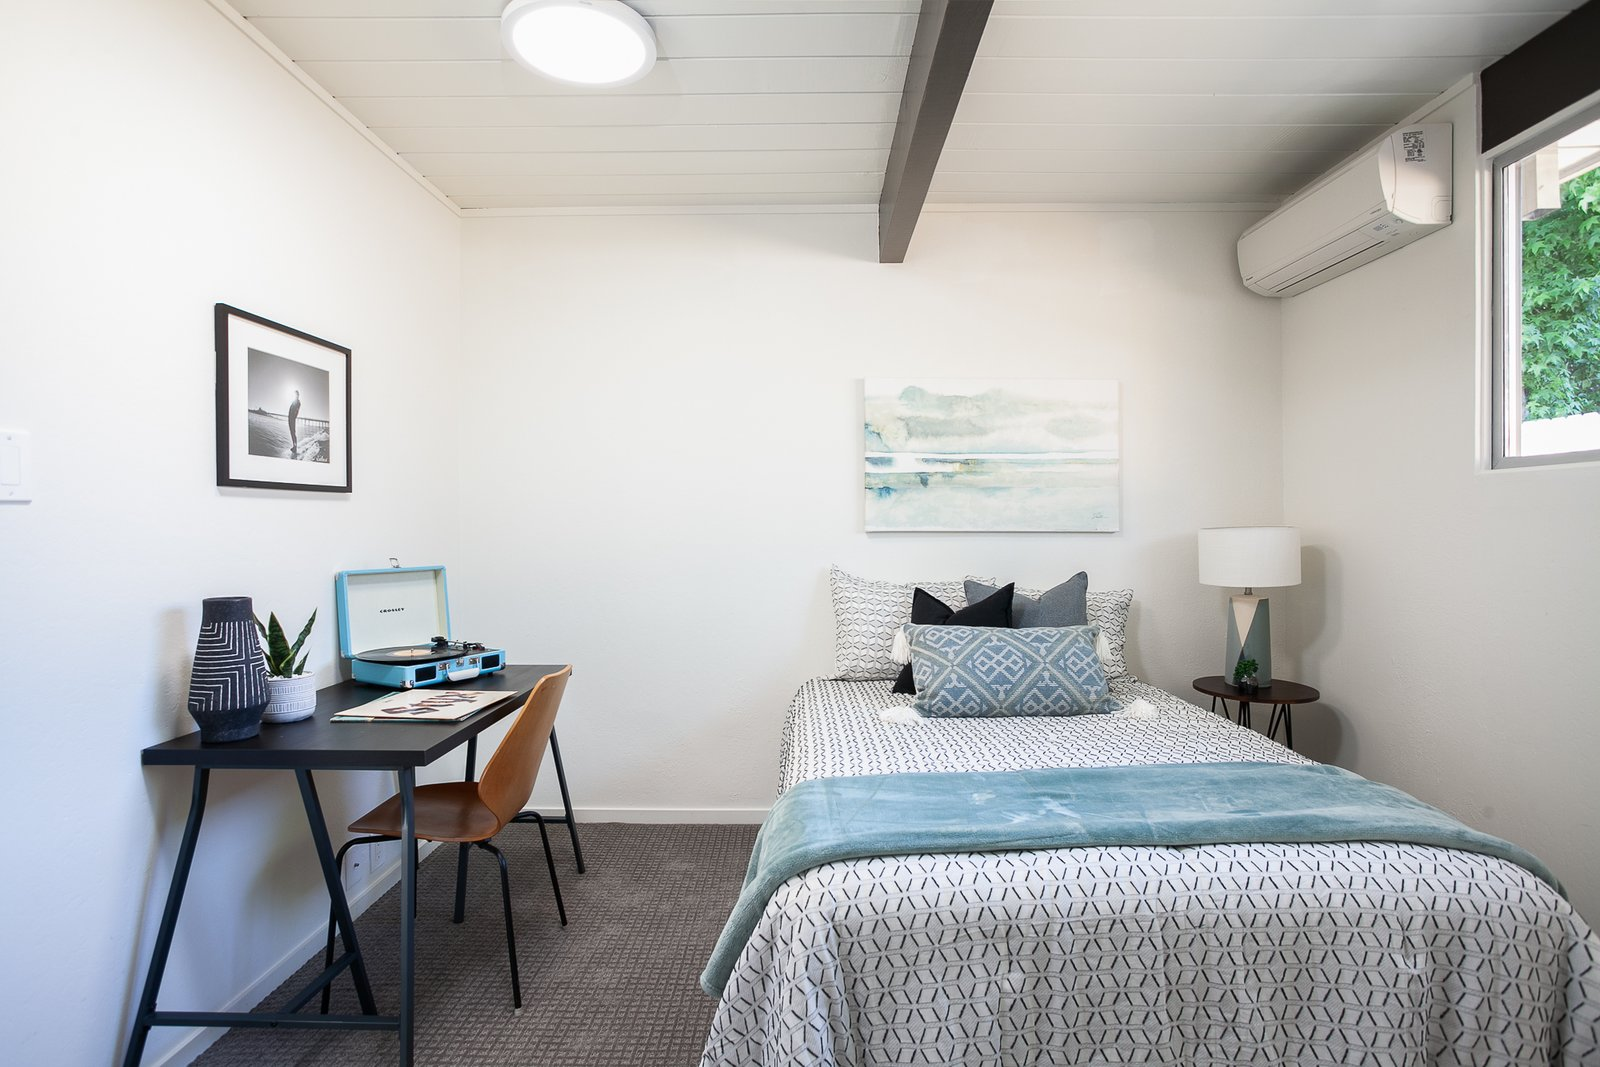 Bedroom, Table, Bed, Night Stands, Ceiling, and Carpet There are four bedrooms in total. All of which are standard Eichler bedroom size.  Bedroom Carpet Ceiling Photos from A Spacious and Stylish Orange County Eichler With a Pool Seeks $1.25M